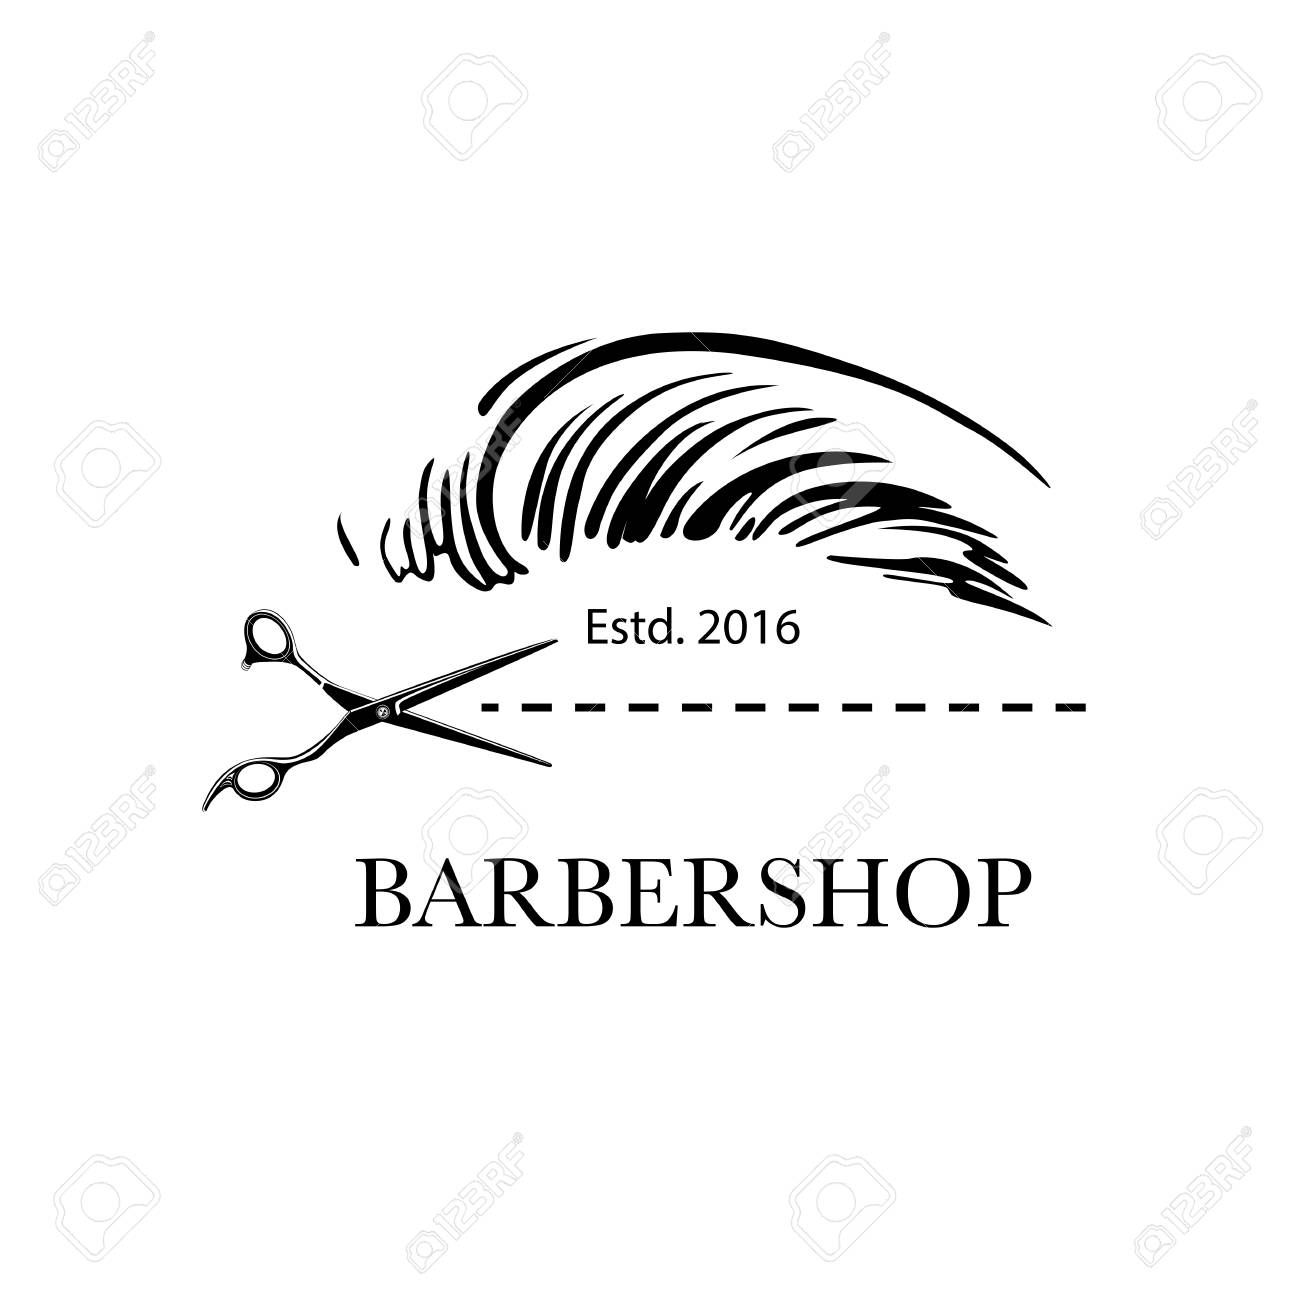 Logo for barbershop, hair salon with barber scissors and haircut